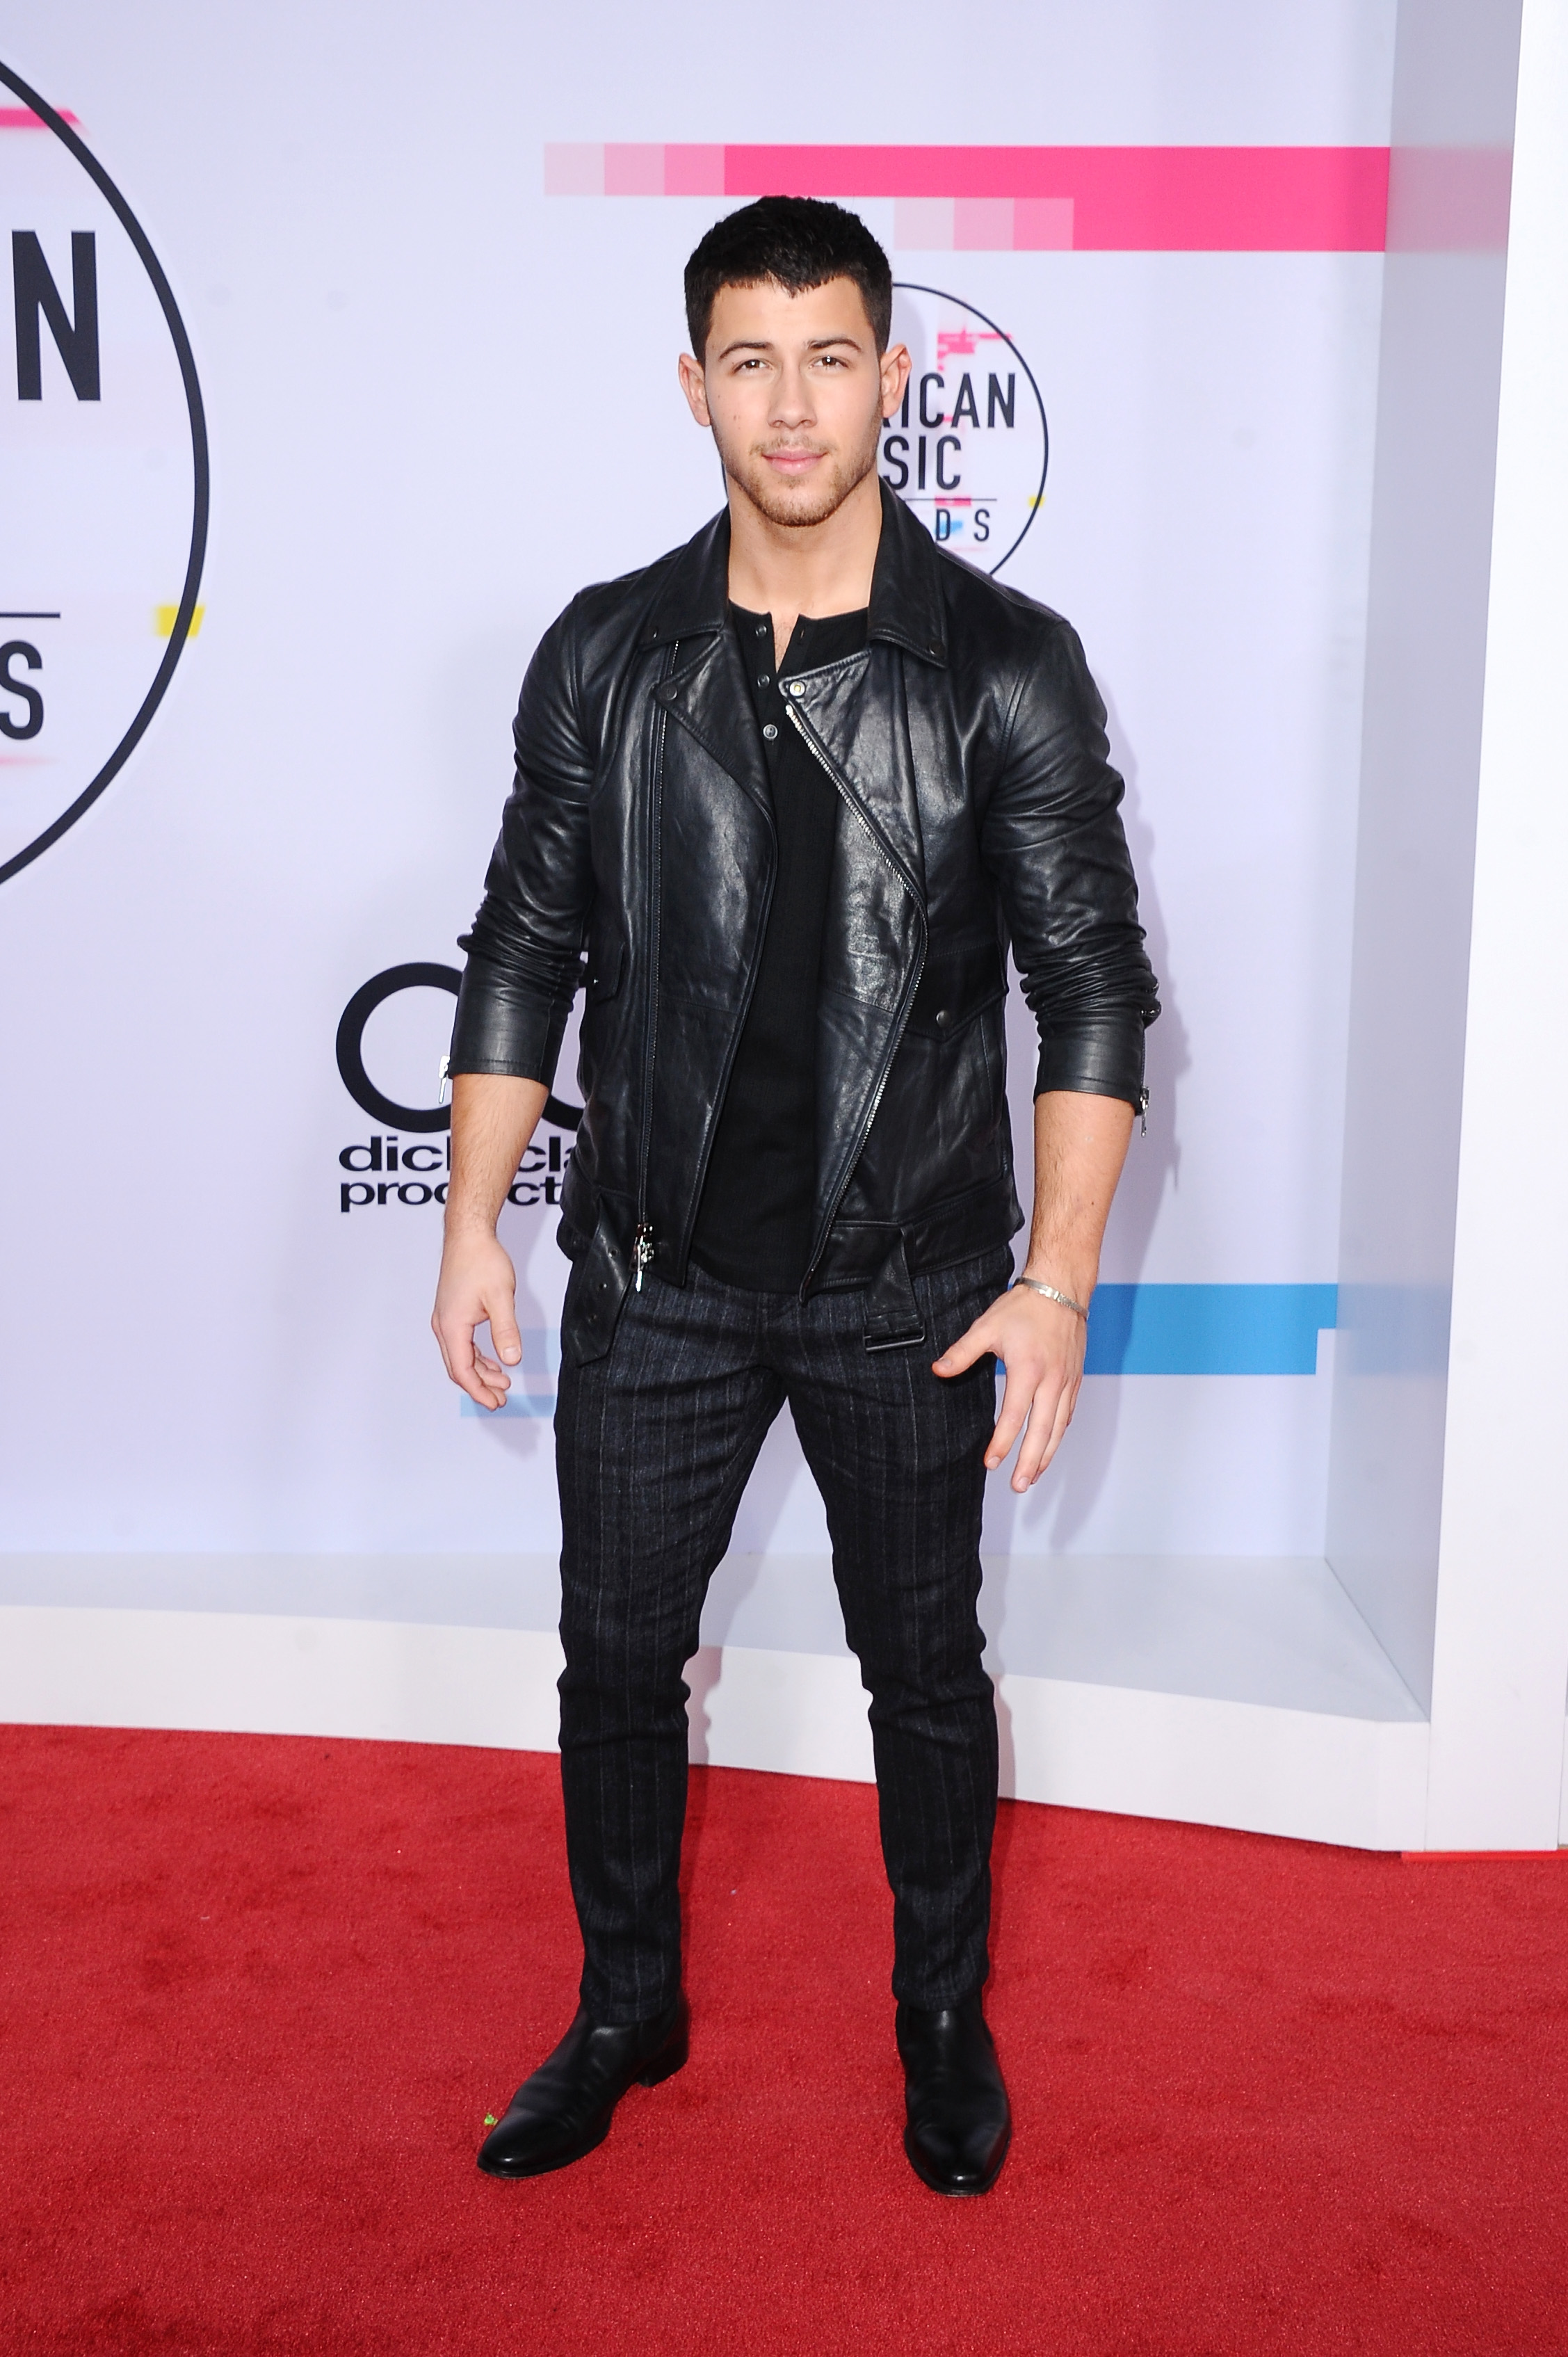 <div class='meta'><div class='origin-logo' data-origin='none'></div><span class='caption-text' data-credit='Jon Kopaloff/FilmMagic via Getty'>Nick Jonas attends the 2017 American Music Awards at Microsoft Theater on November 19, 2017 in Los Angeles, California.</span></div>